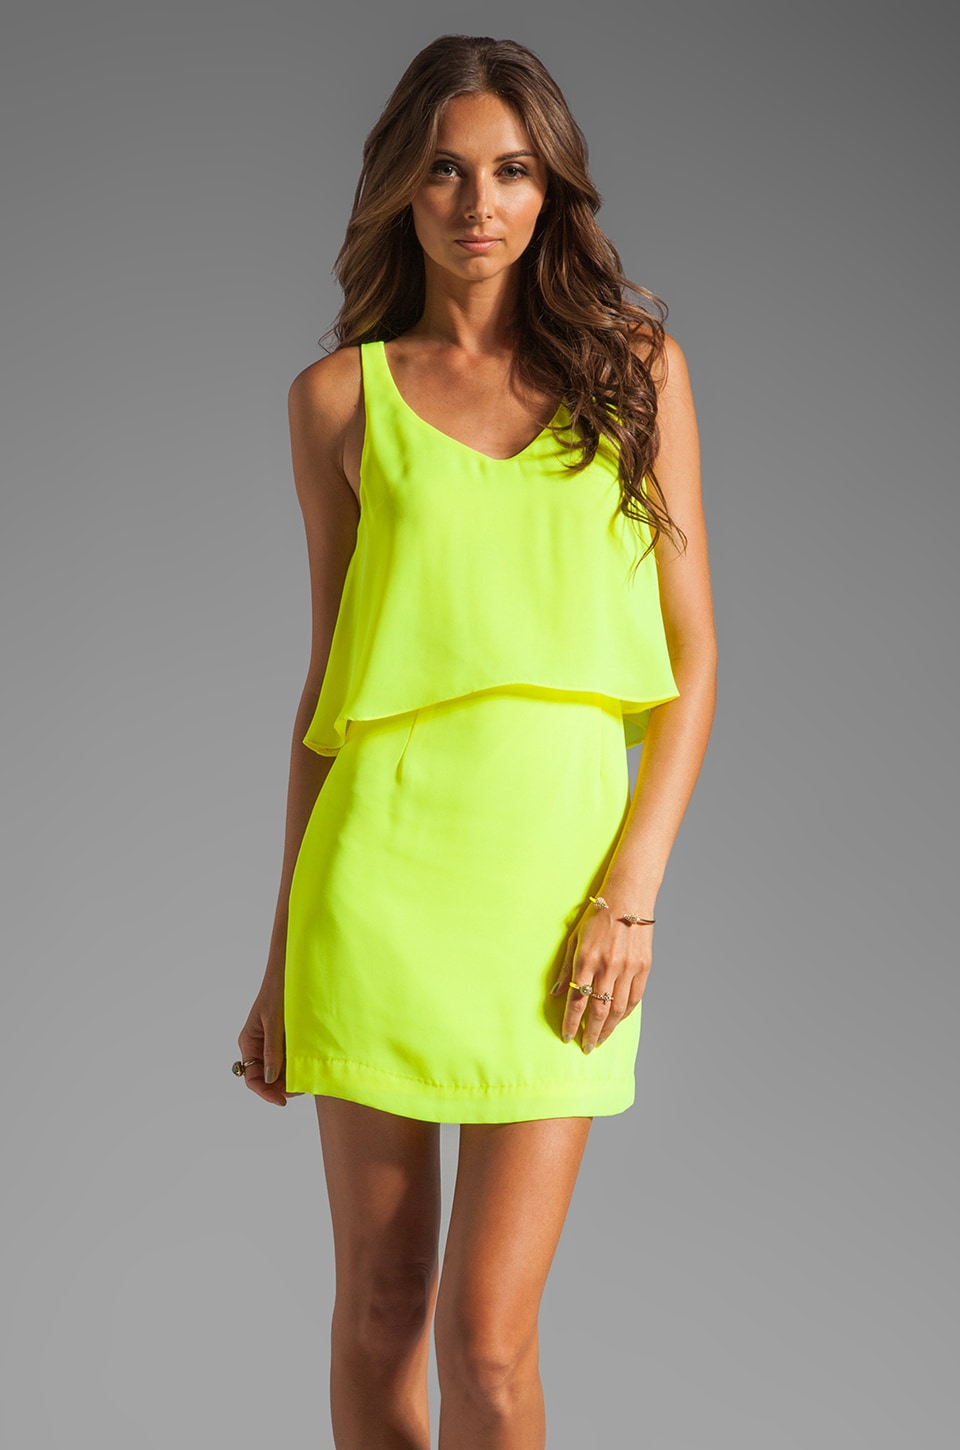 Dolce Vita Mollas Dress in Yellow